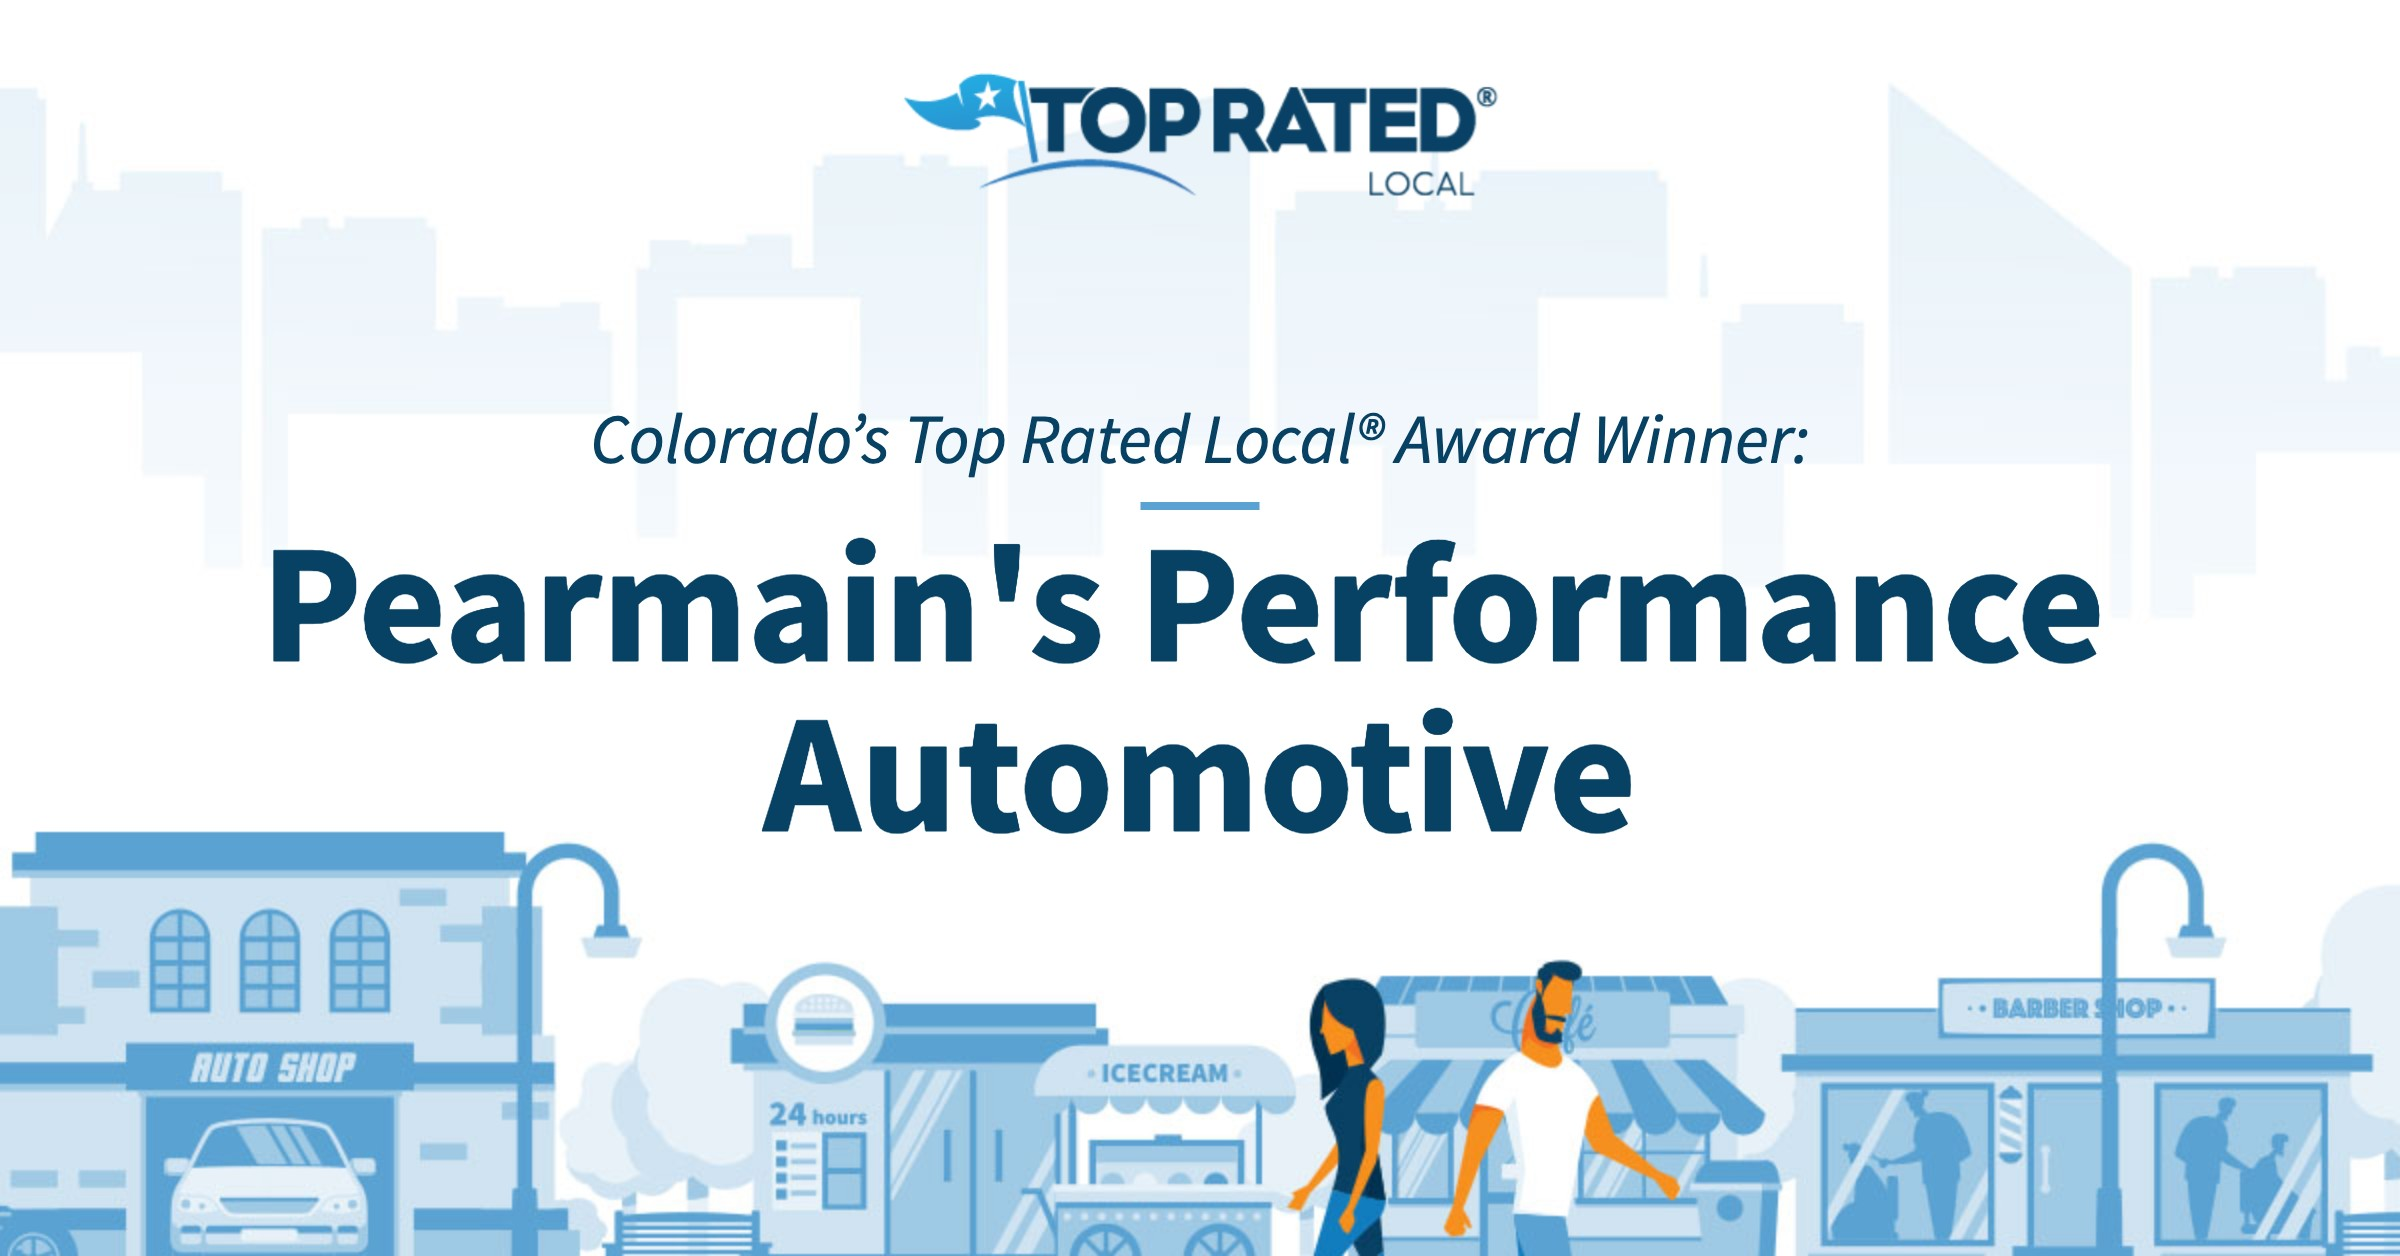 Colorado's Top Rated Local® Award Winner: Pearmain's Performance Automotive